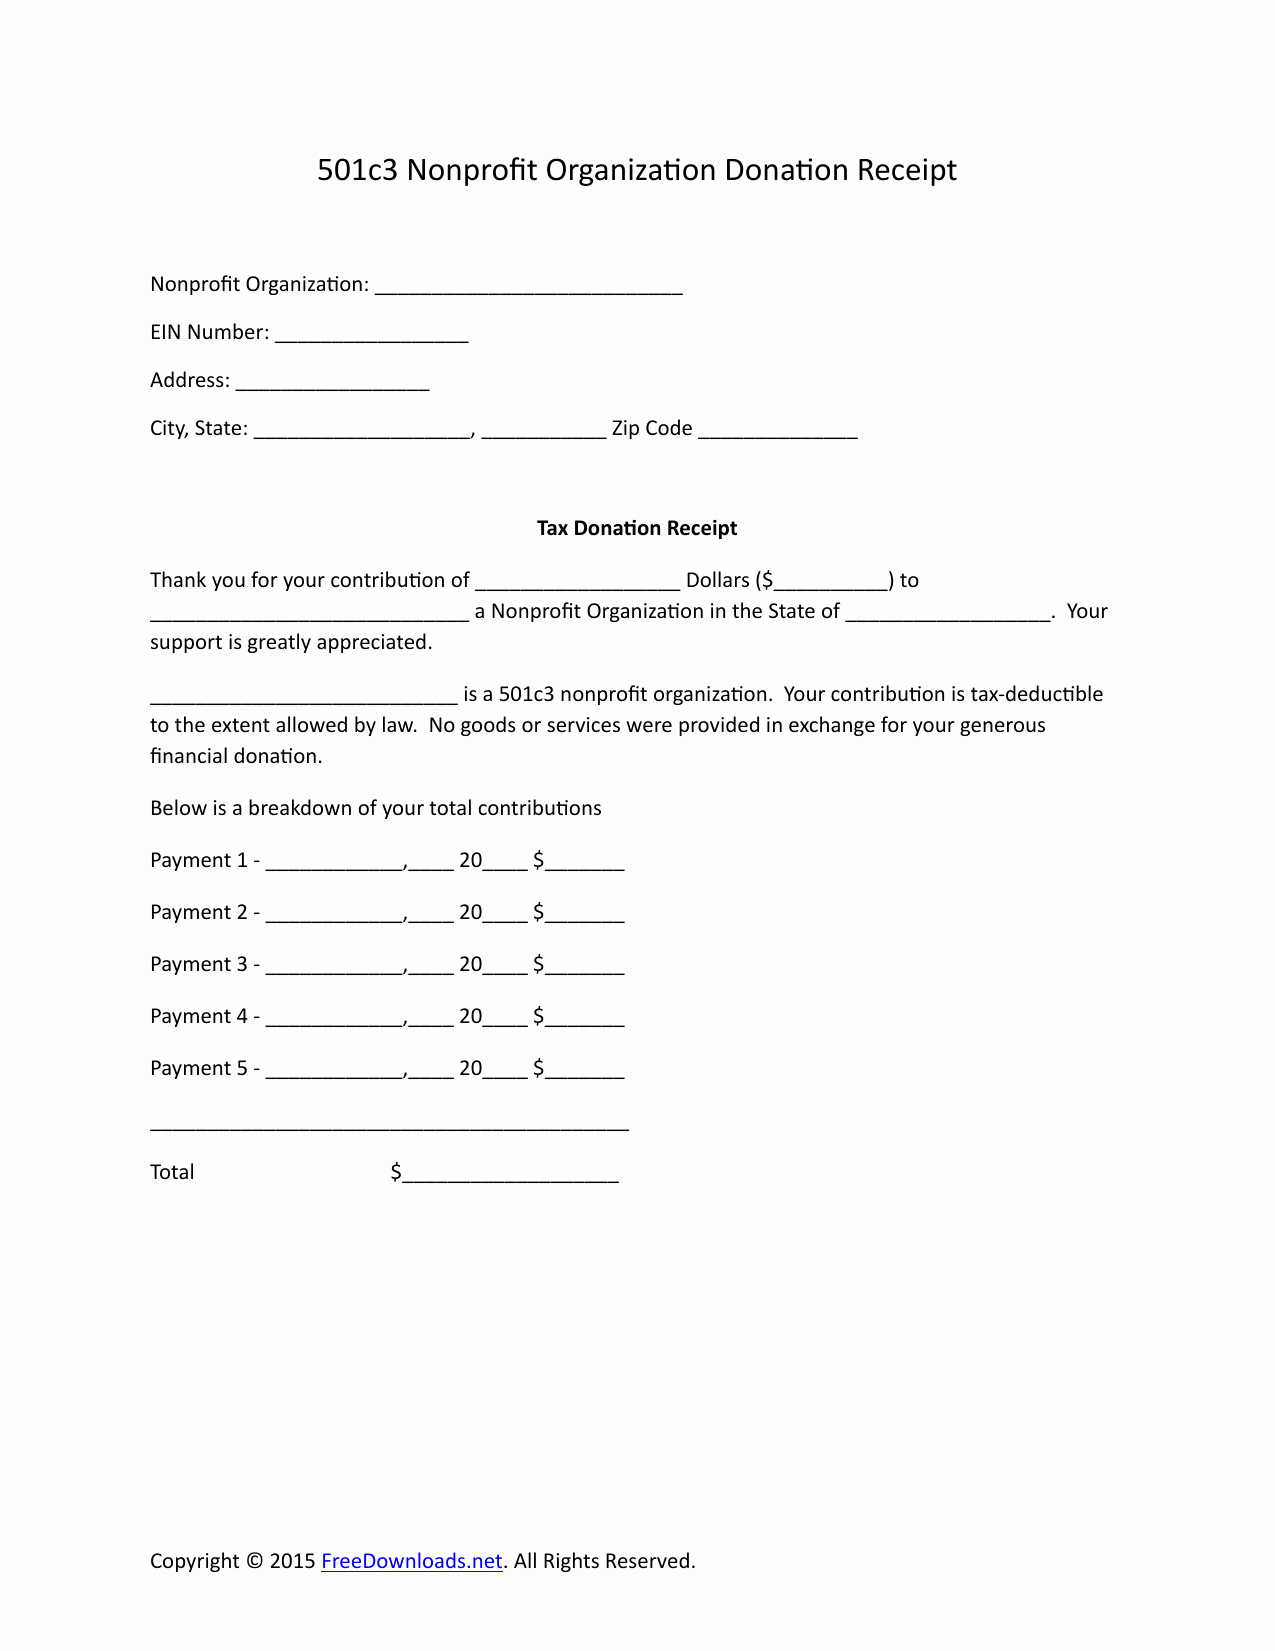 Non Profit Receipt Template New Download 501c3 Donation Receipt Letter for Tax Purposes